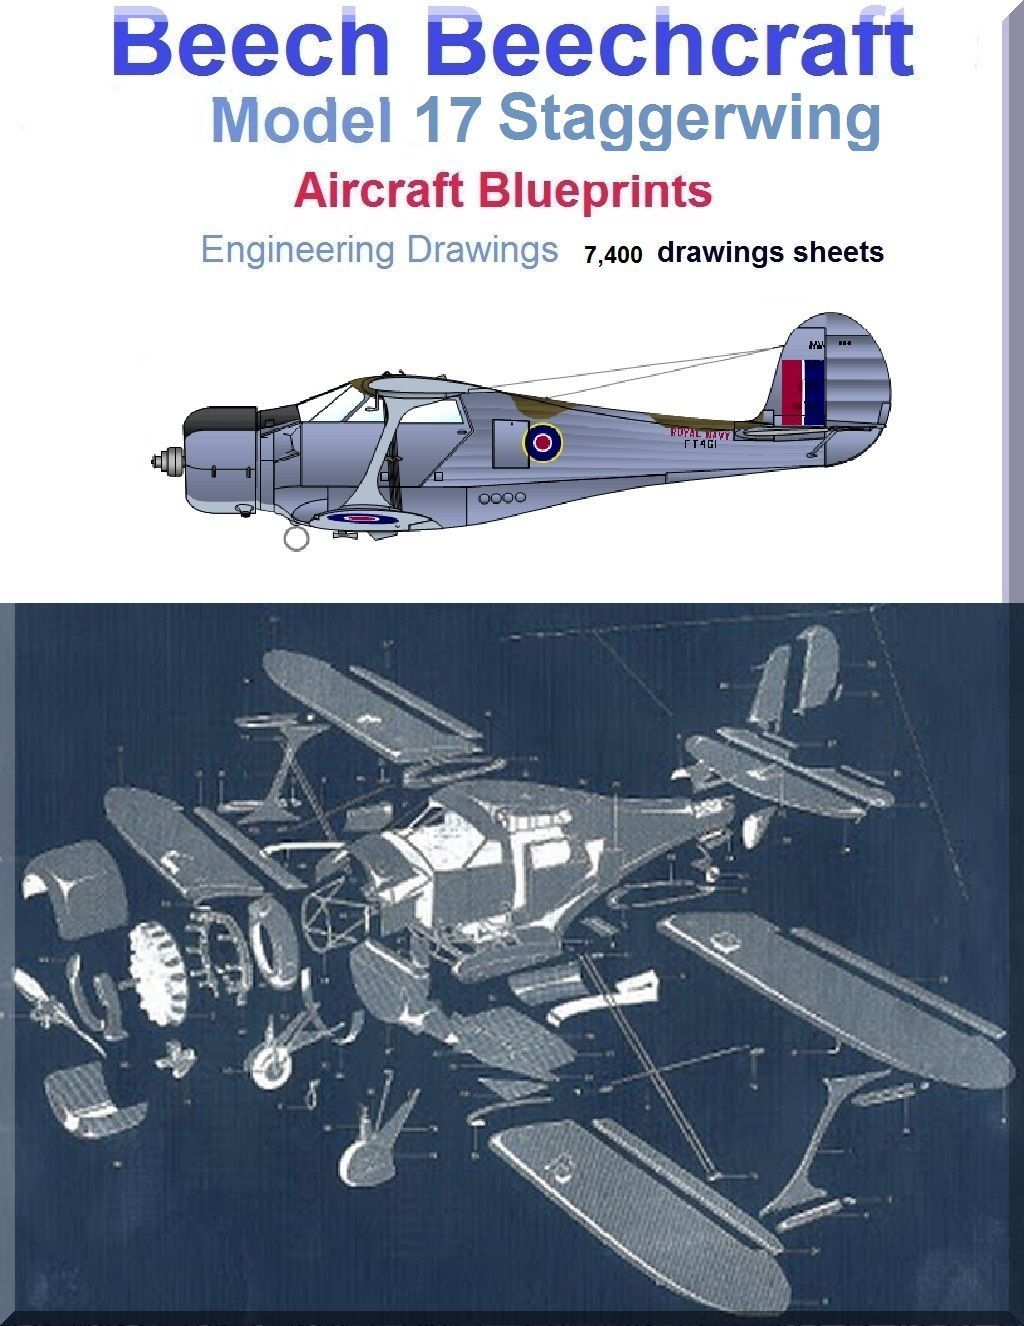 Beech model 17 staggerwing aircraft blueprints engineering drawings beech model 17 staggerwing aircraft blueprints engineering drawings 9 dvds malvernweather Choice Image